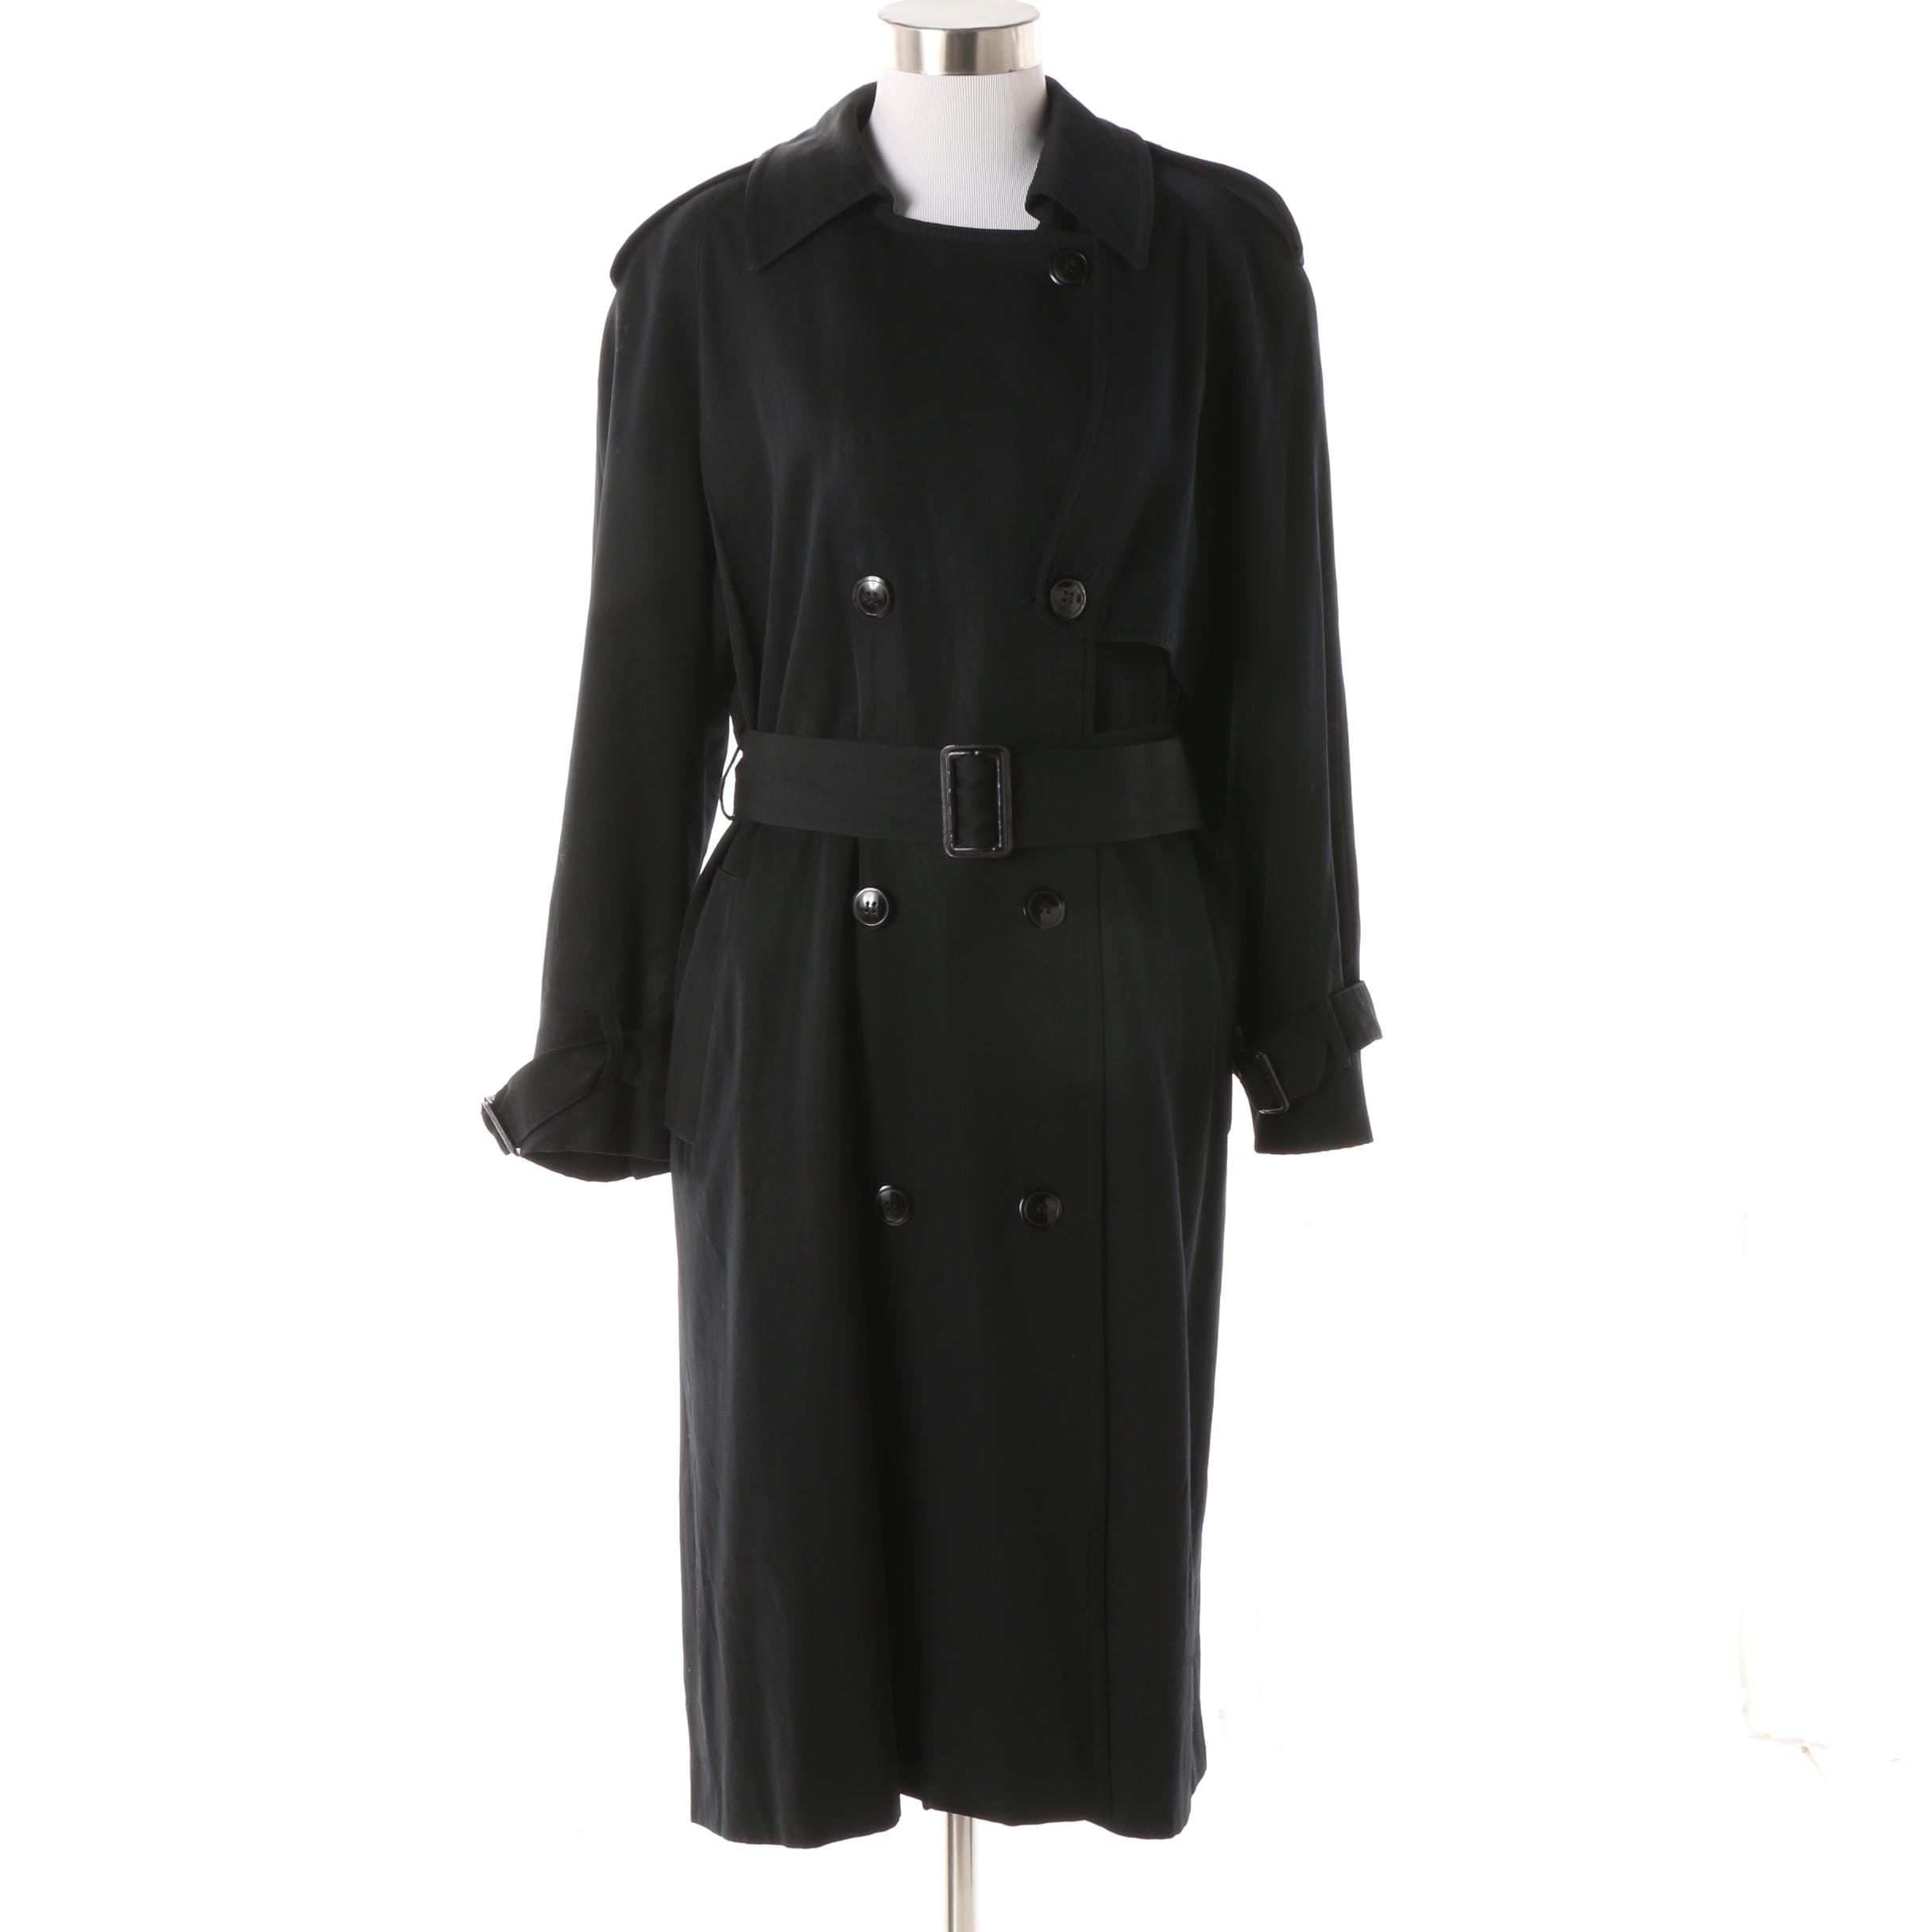 Women's Neiman Marcus Black Wool Double-Breasted Trench Coat